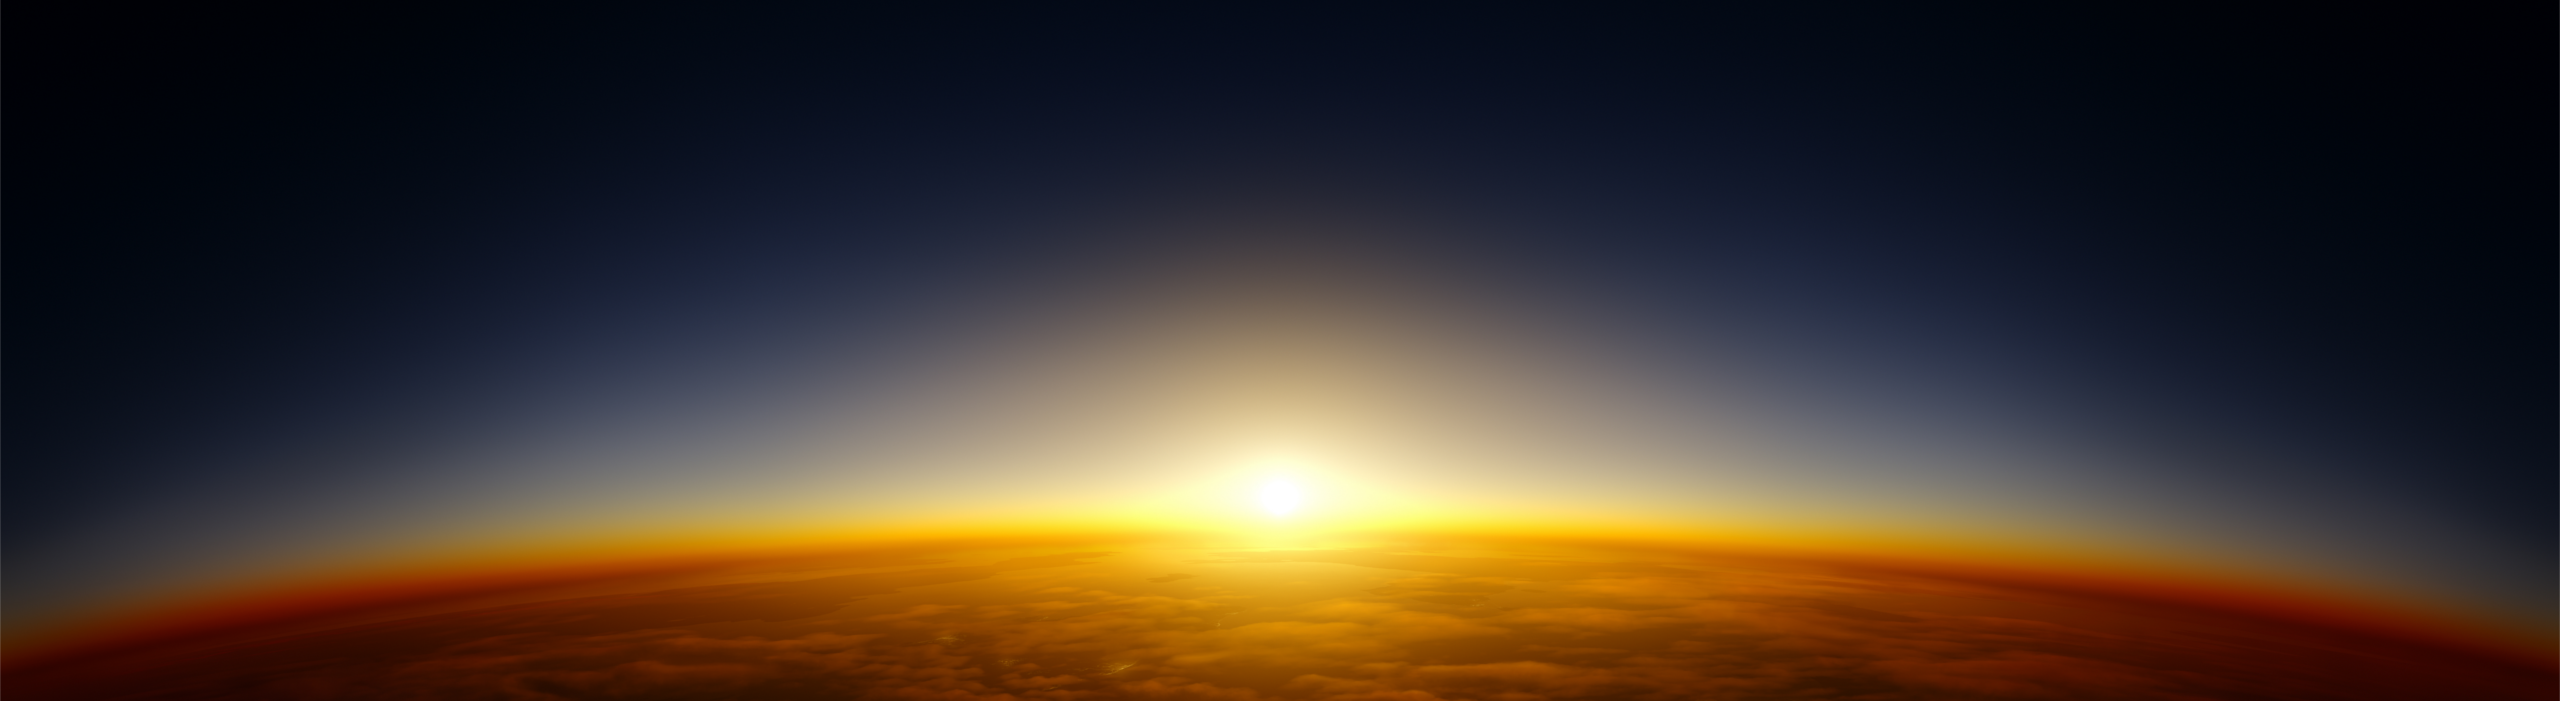 image of sun rising over a planet